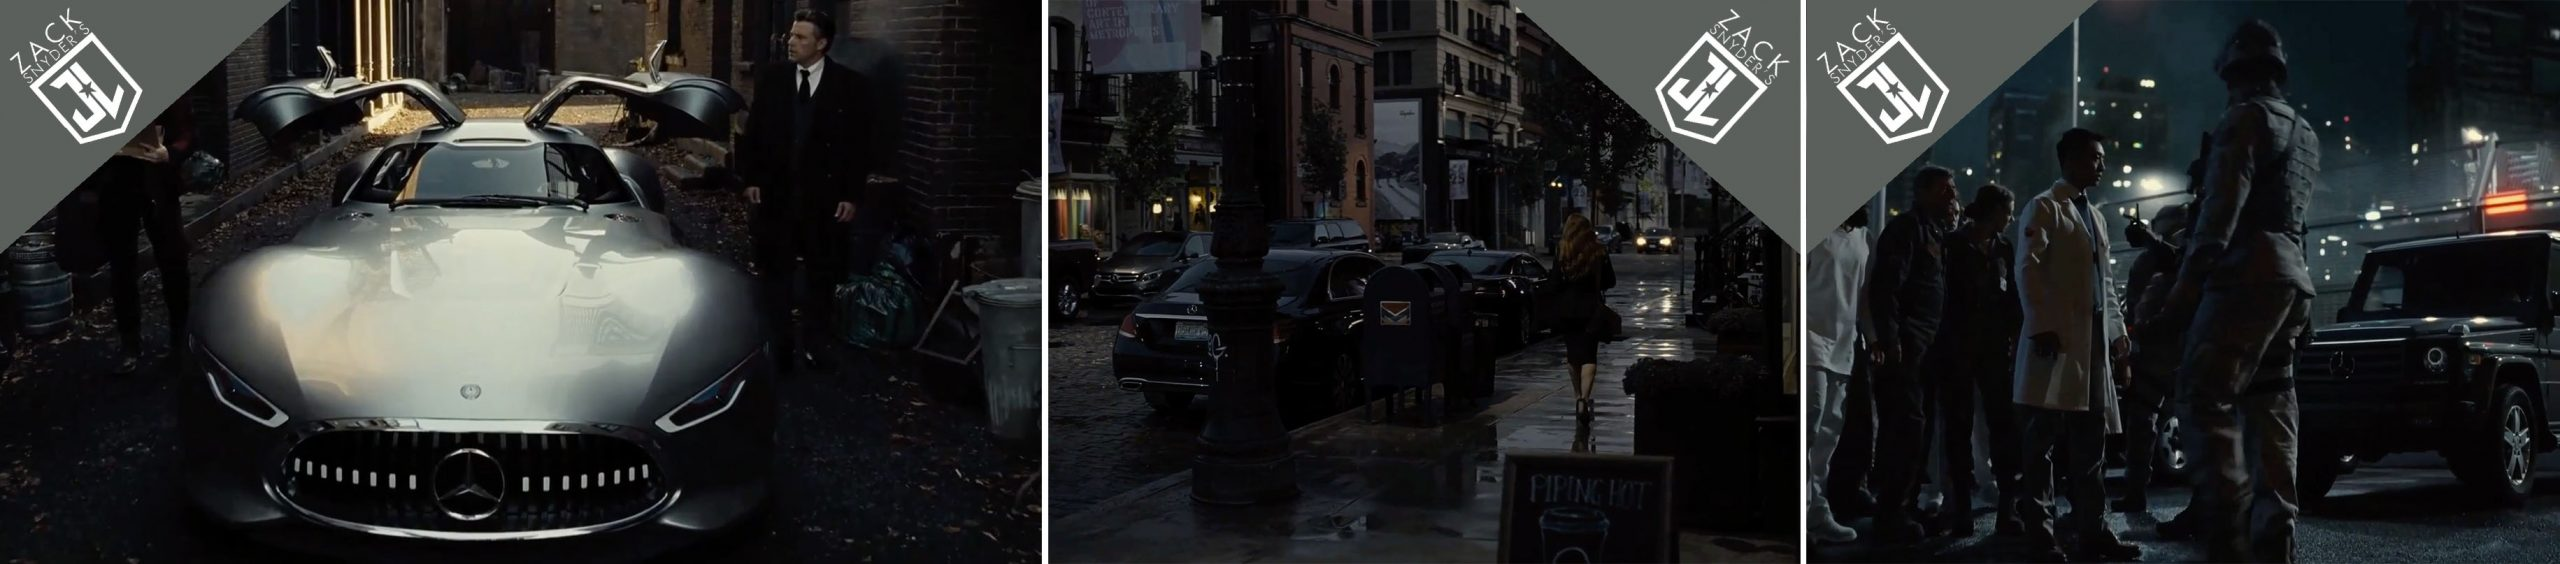 Mercedes-Benz product placements in Zack Snyder's Justice League